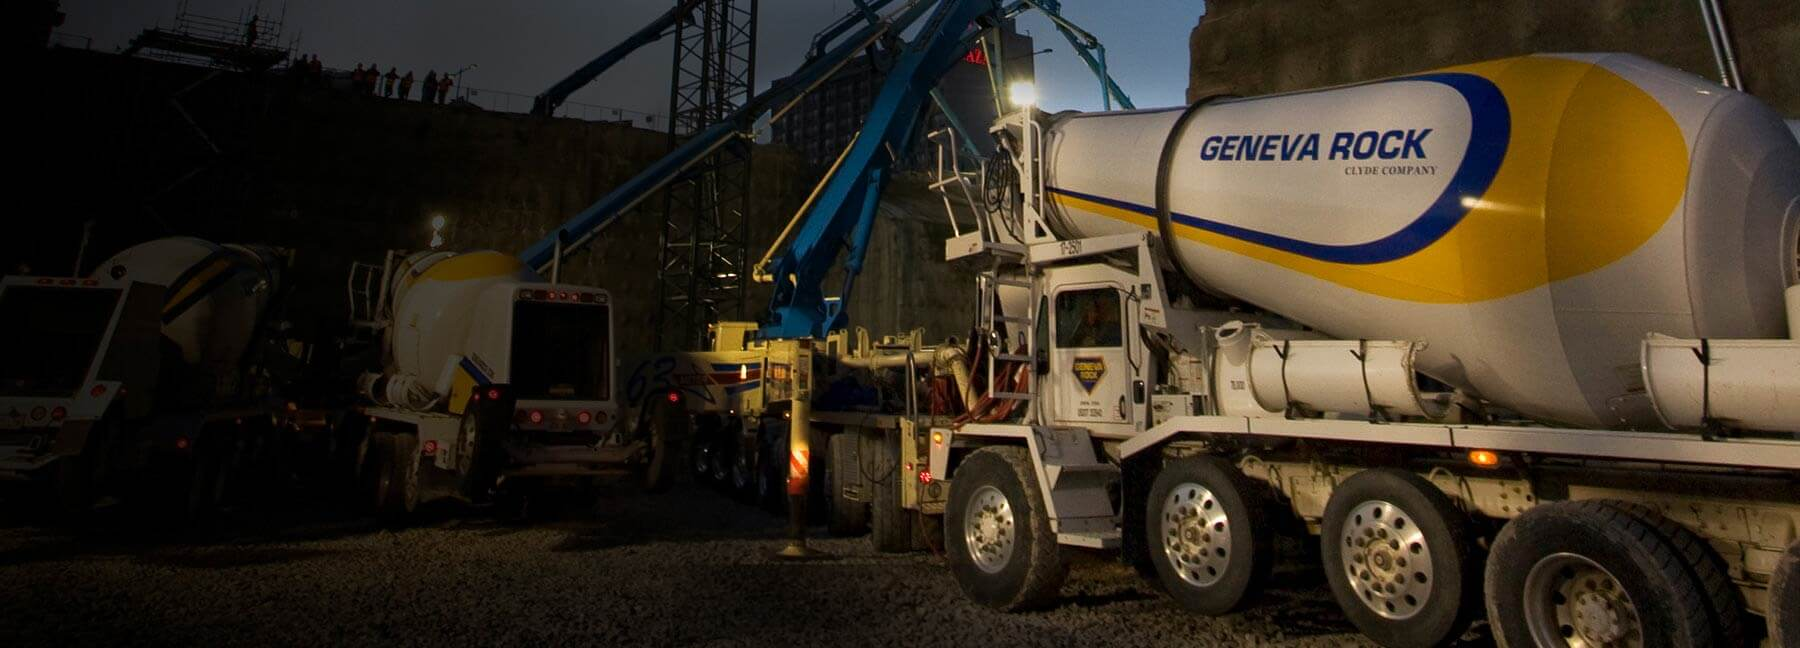 Utah's most reliable source for ready-mix concrete for commercial, residential, and infrastructure